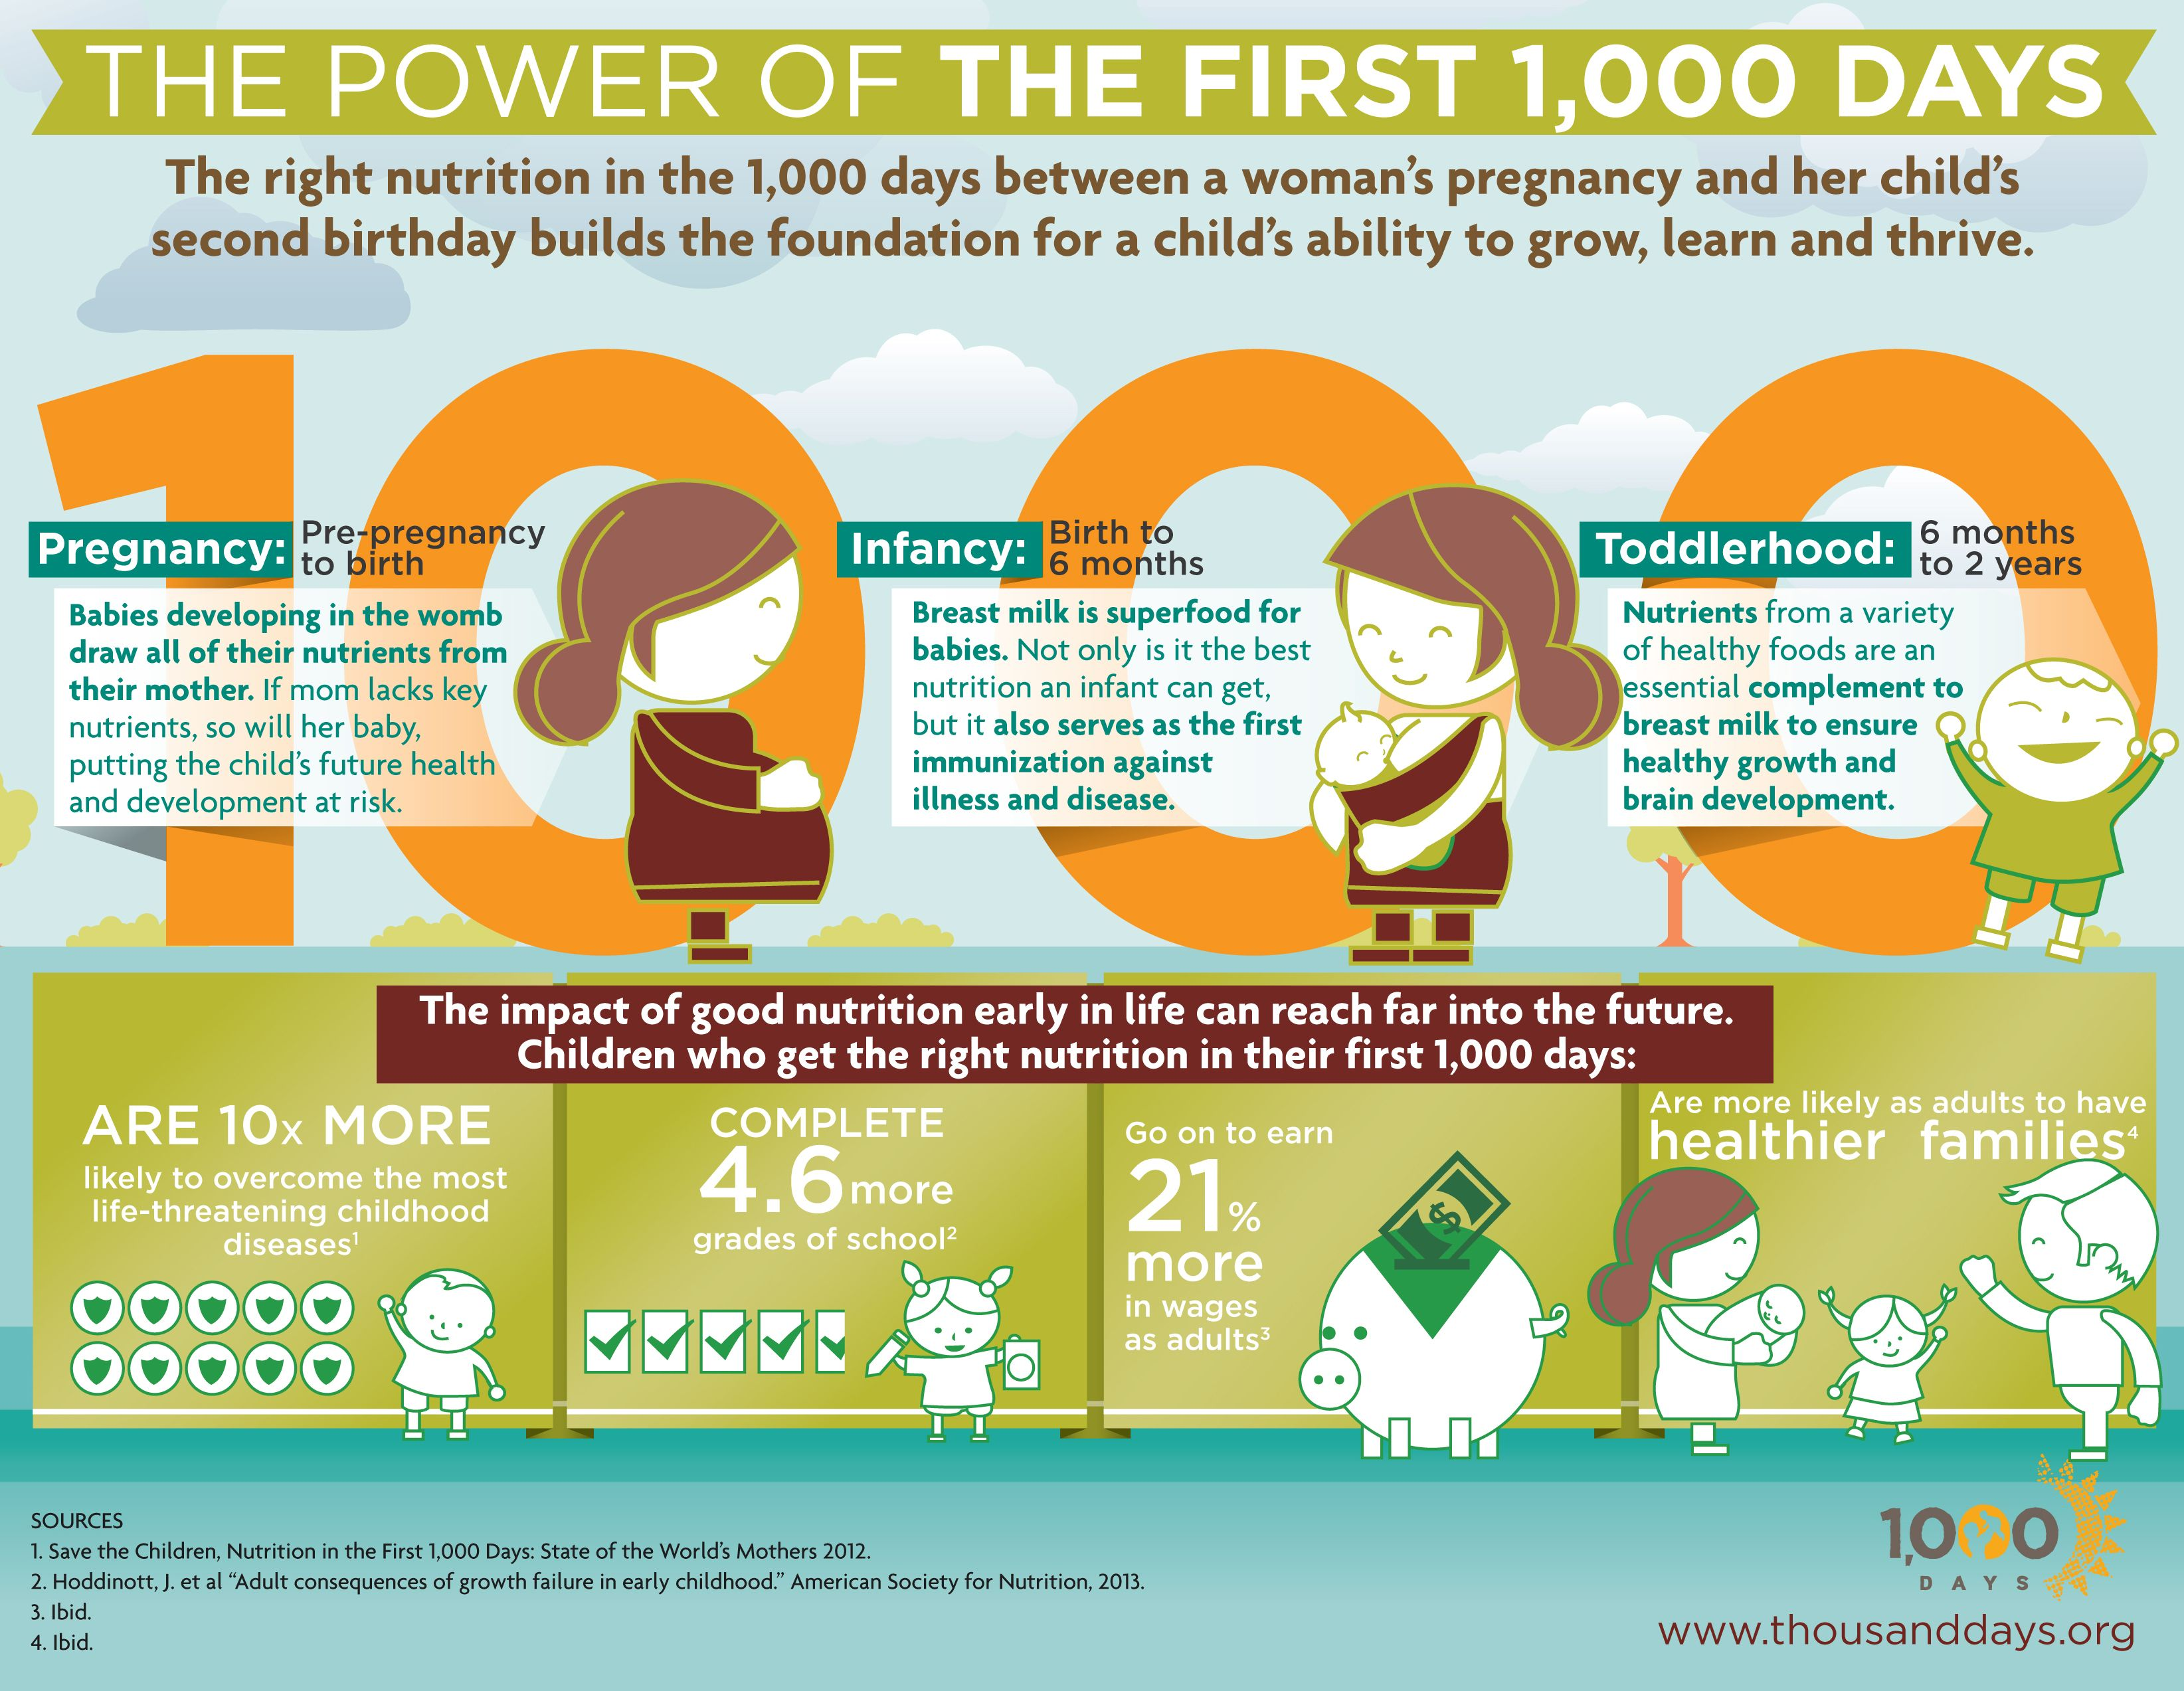 The Power of the First 1,000 Days  #infographic #nutrition